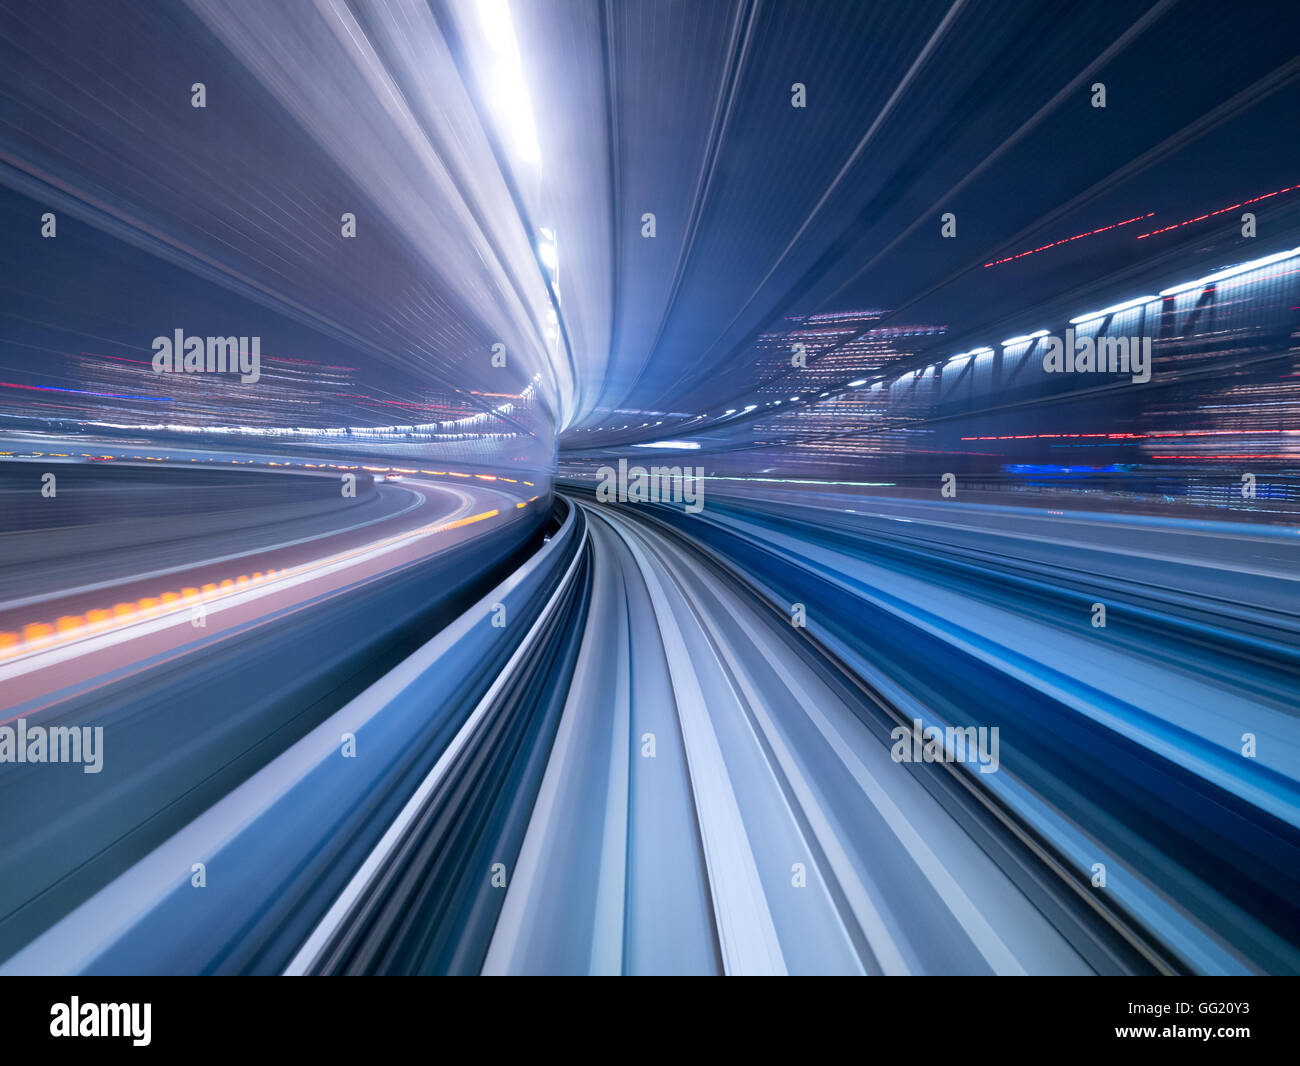 Motion blur of train moving inside tunnel in Tokyo, Japan - Stock Image